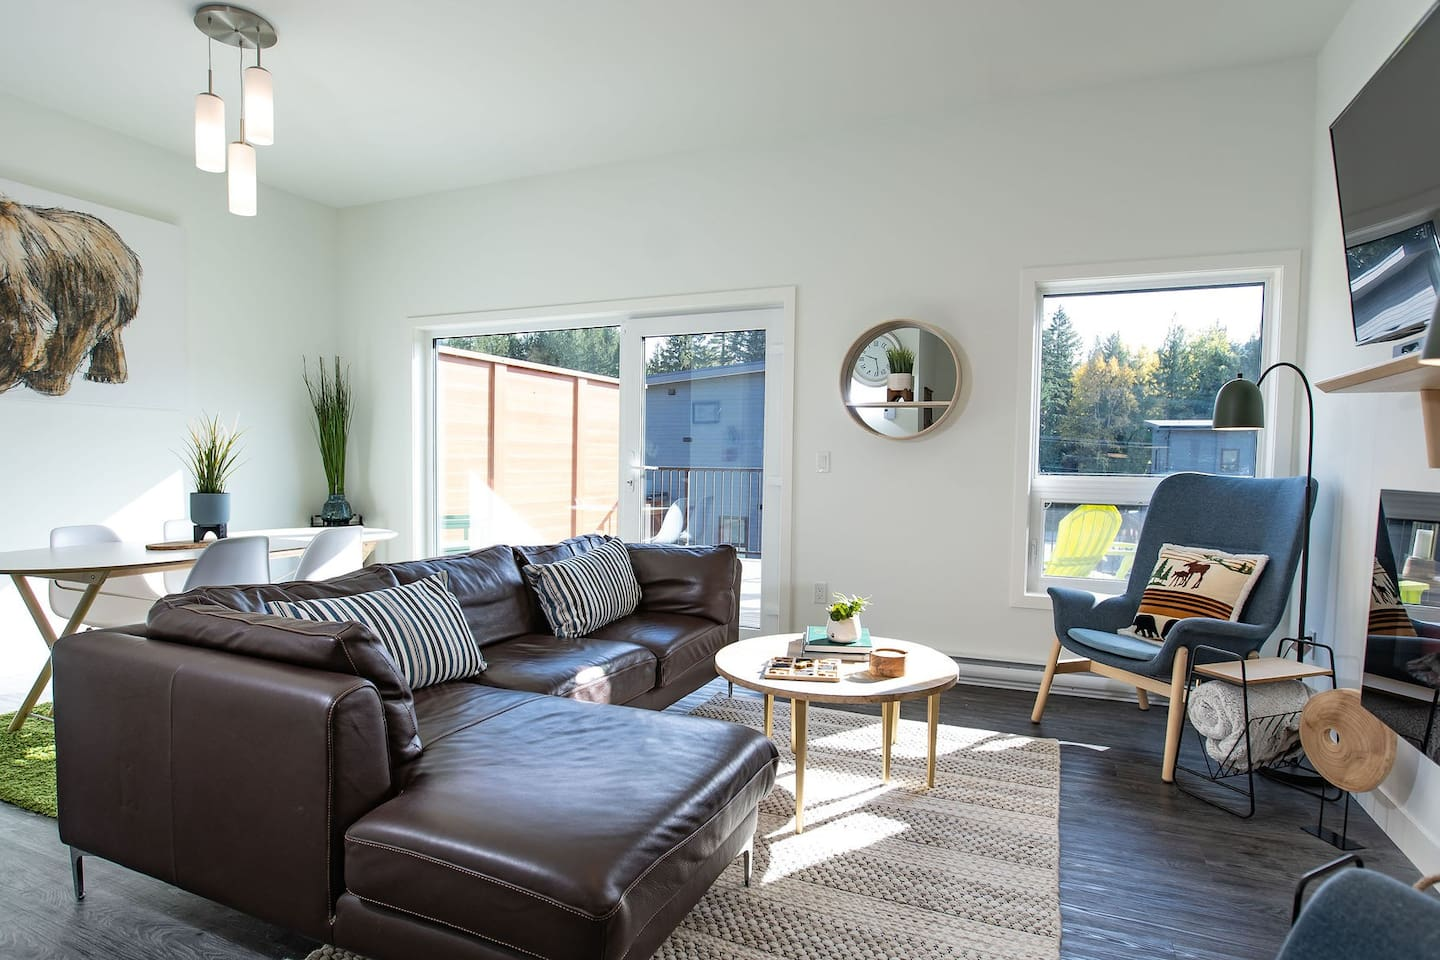 The living/dining area of the condo provides a comfortable gathering place to relax, share stories about your Revelstoke adventures or unwind after a day of activities.